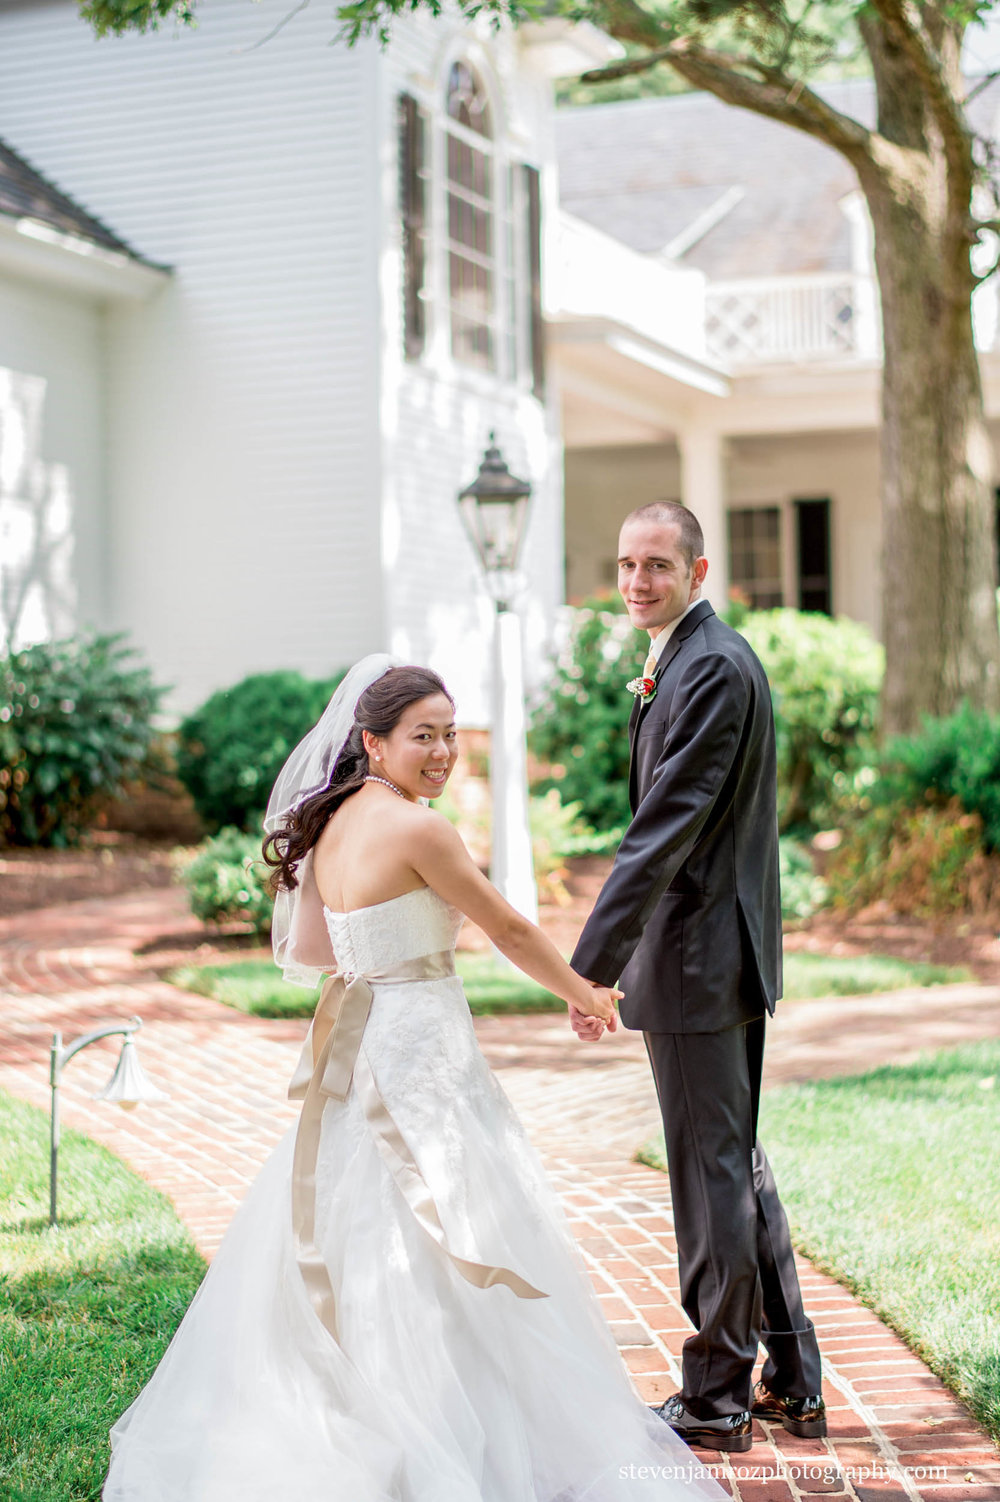 holding-hands-rose-hill-plantation-bride-groom-wedding-steven-jamroz-photography-0549.jpg